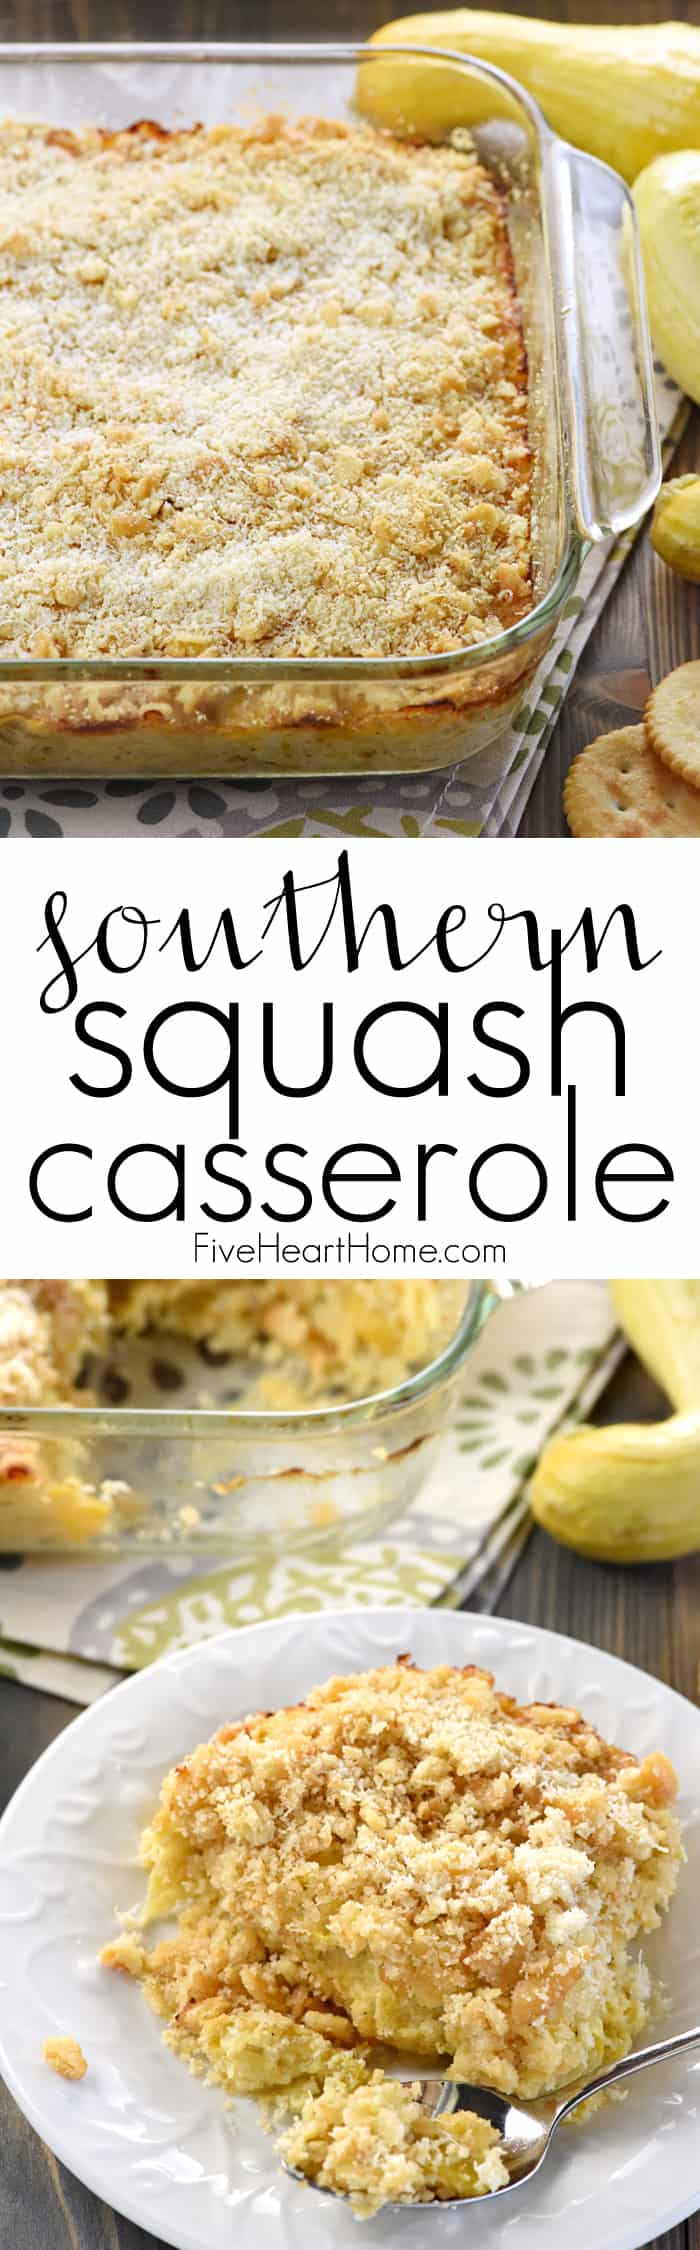 Southern Squash Casserole Collage with Text Overlay